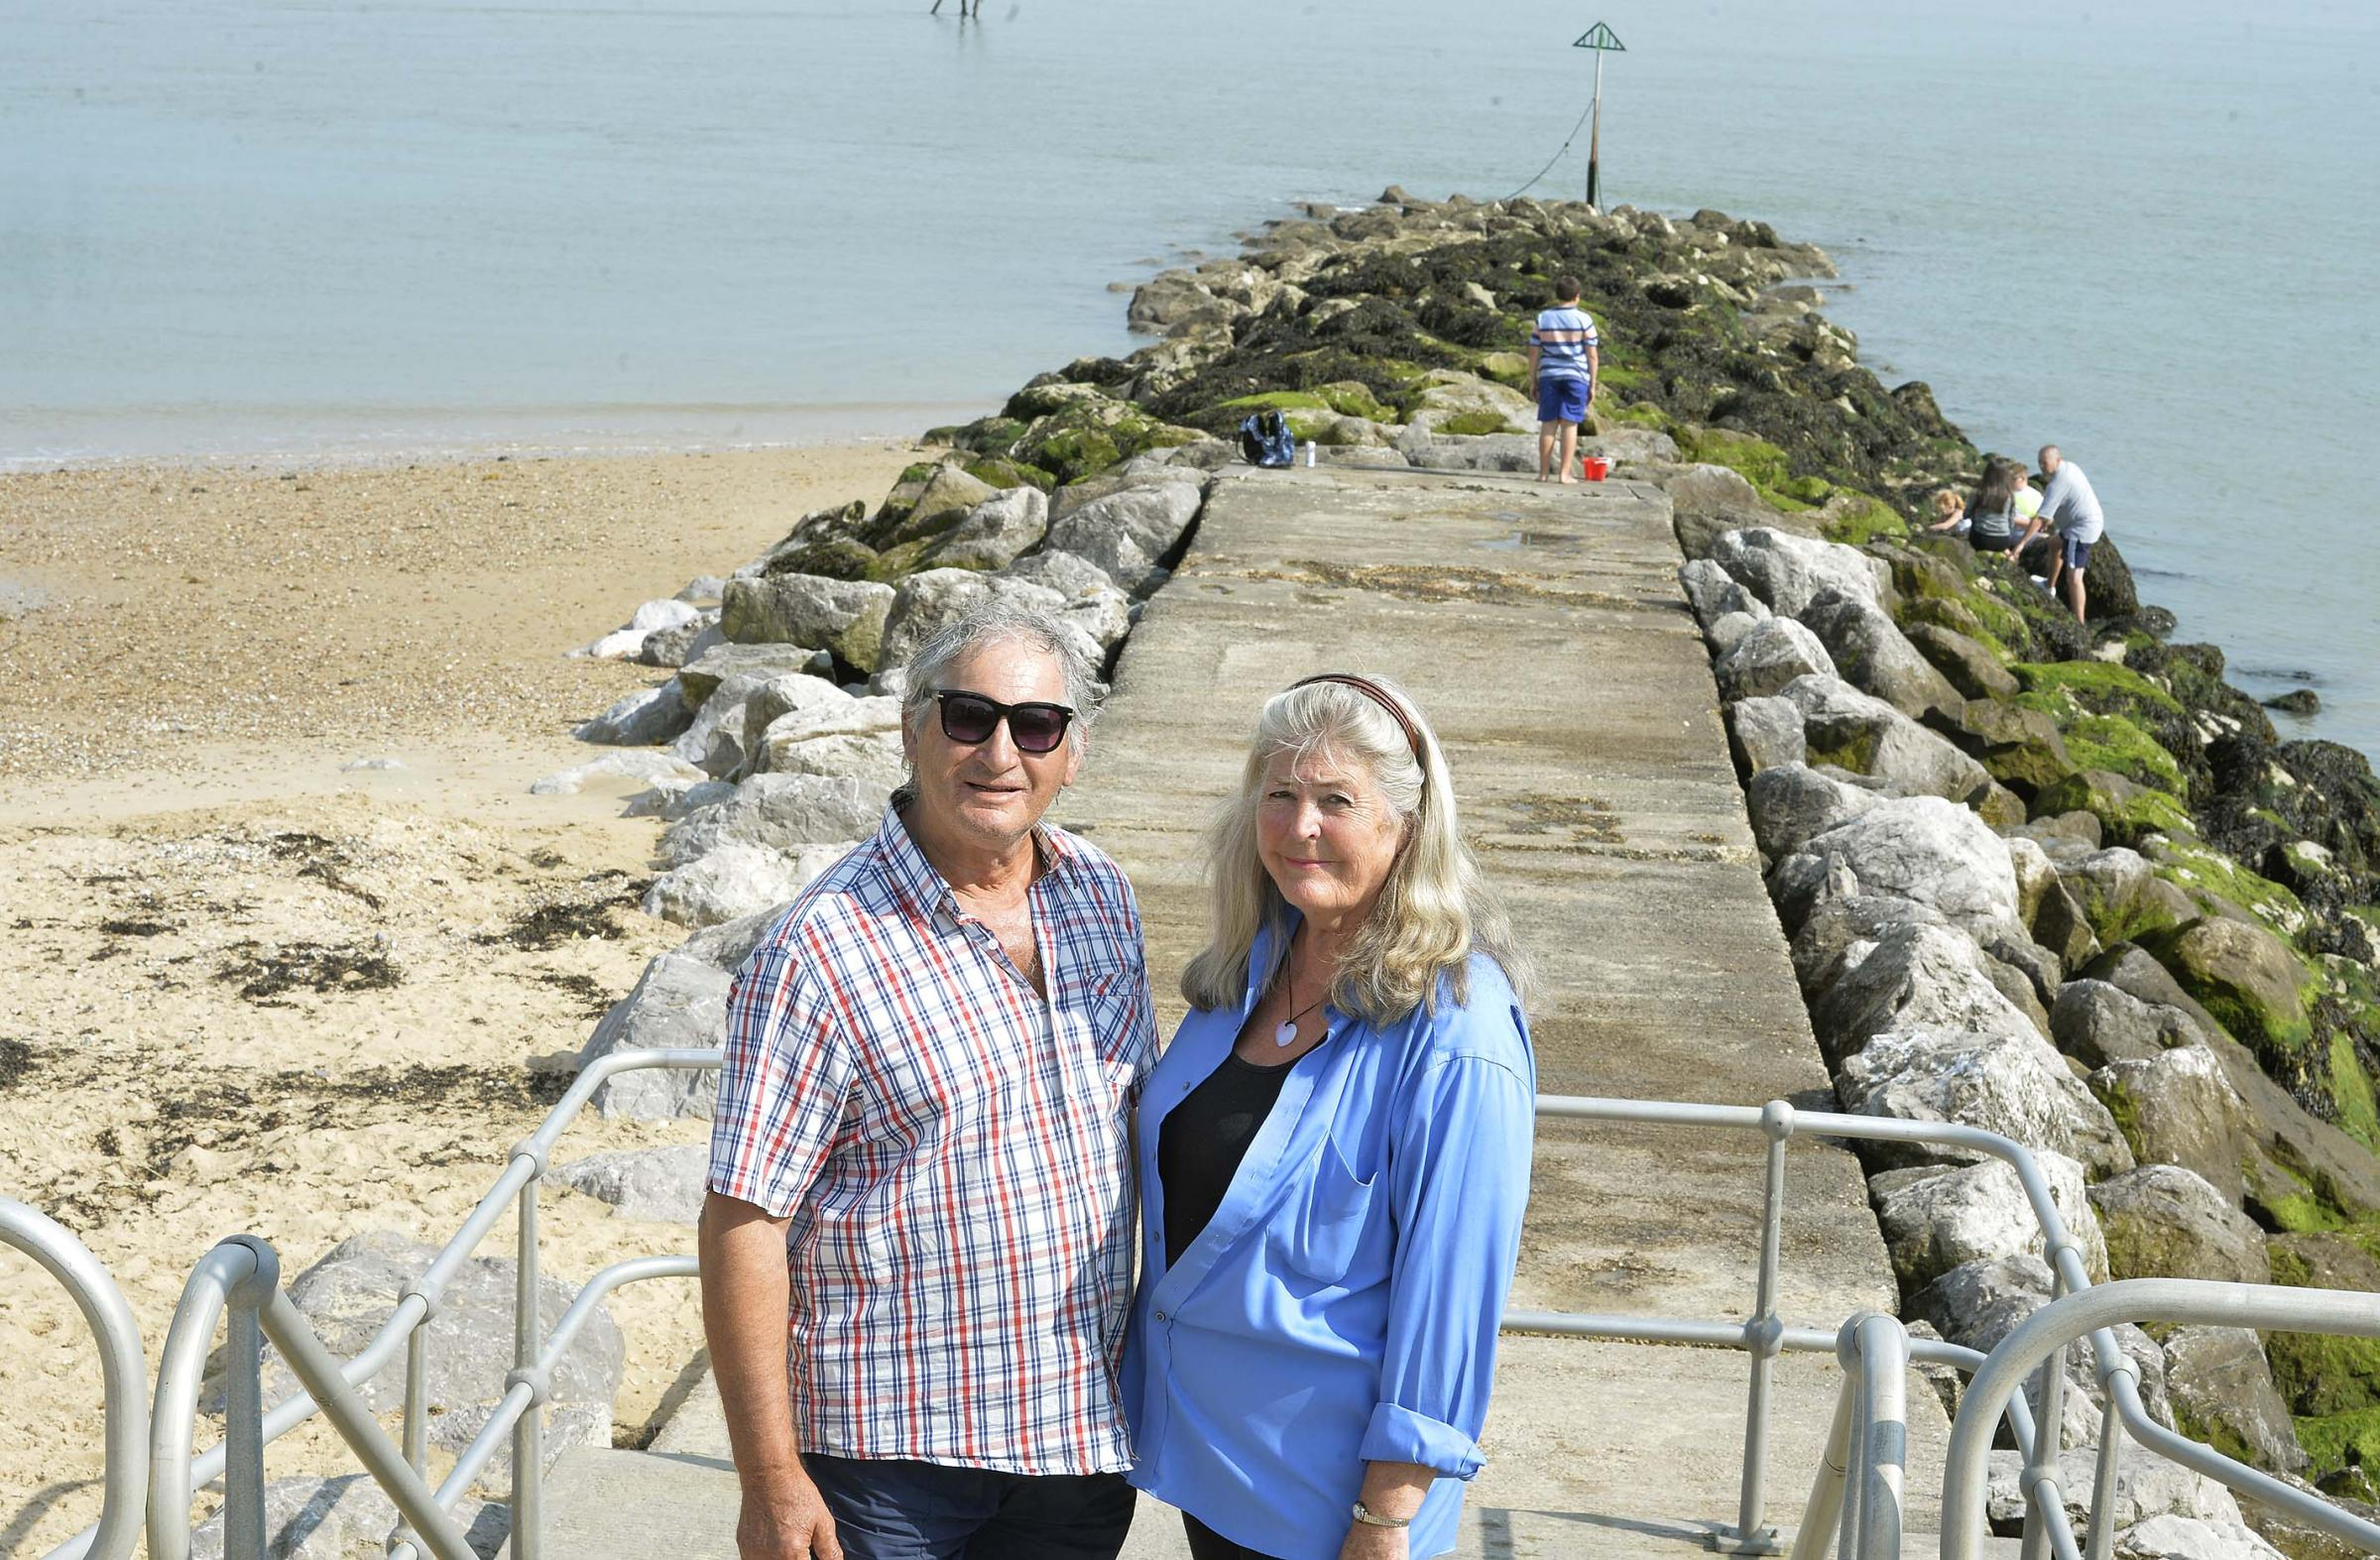 MORE WARNING: Sea swimmer Rodney Larner and his wife Irene at the waste outlet pipe on Eastern Terrace, Walton